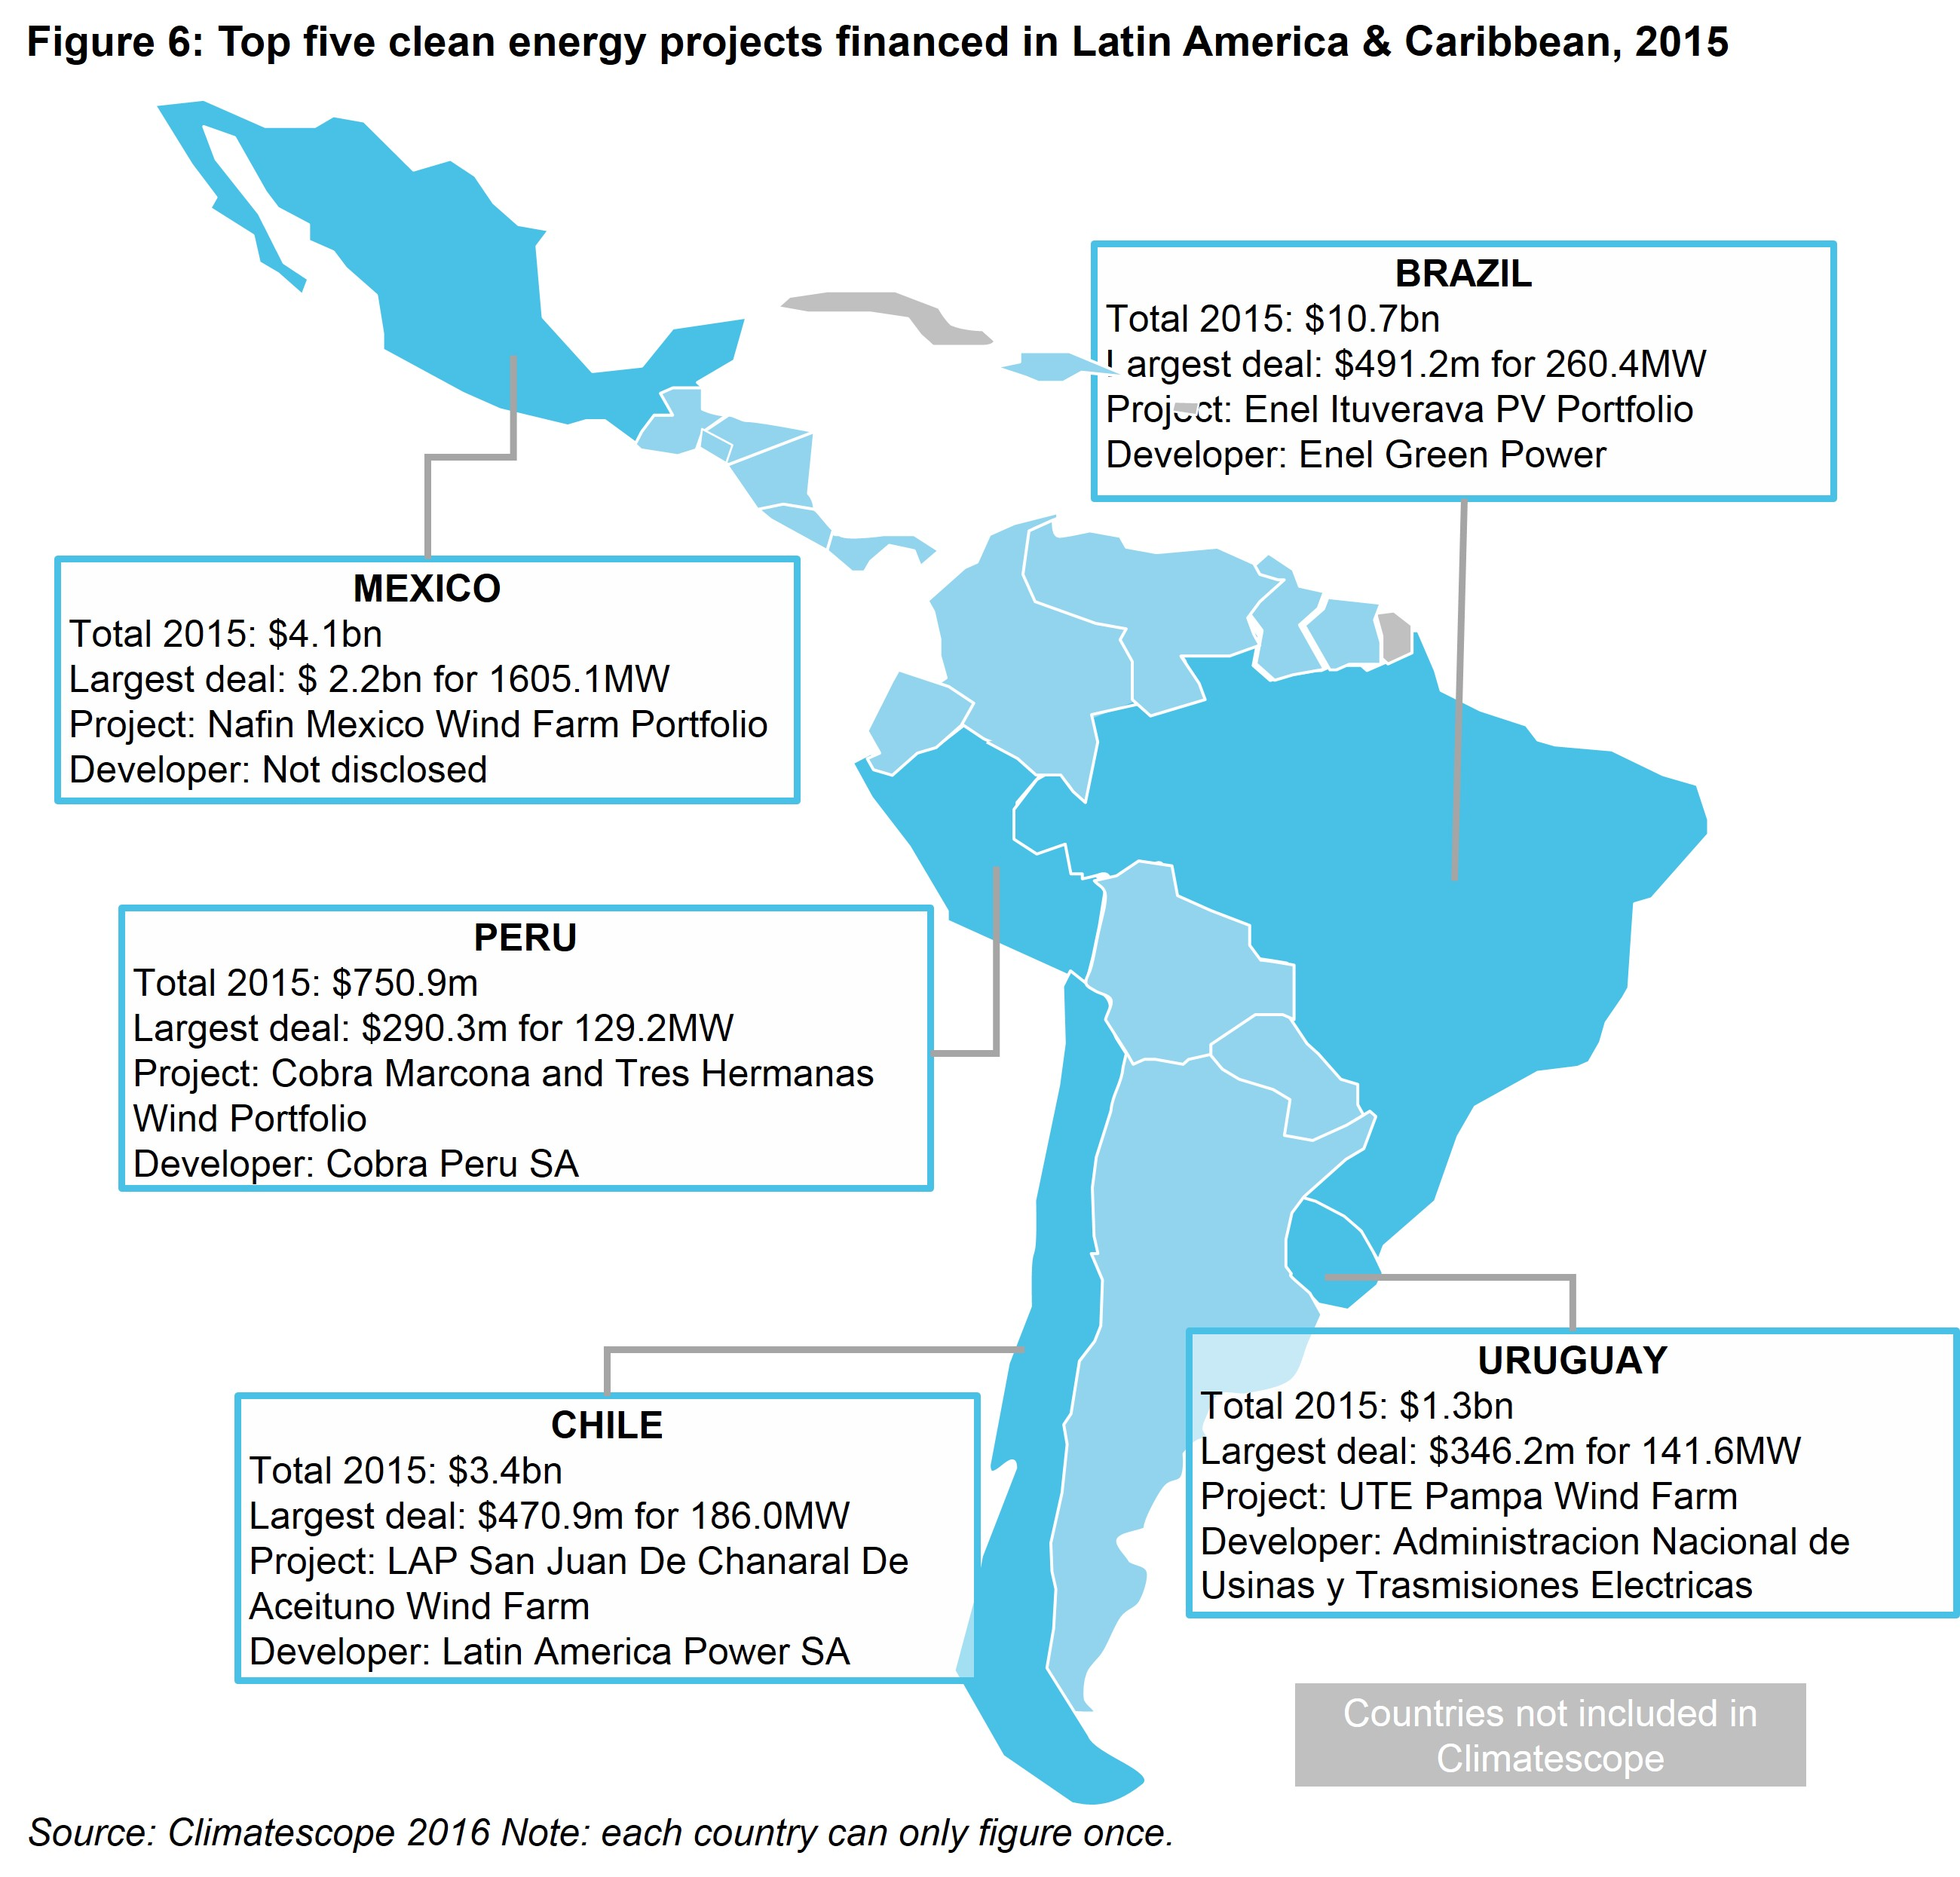 LAC Fig 6 - Top five clean energy projects financed in Latin America & Caribbean, 2015